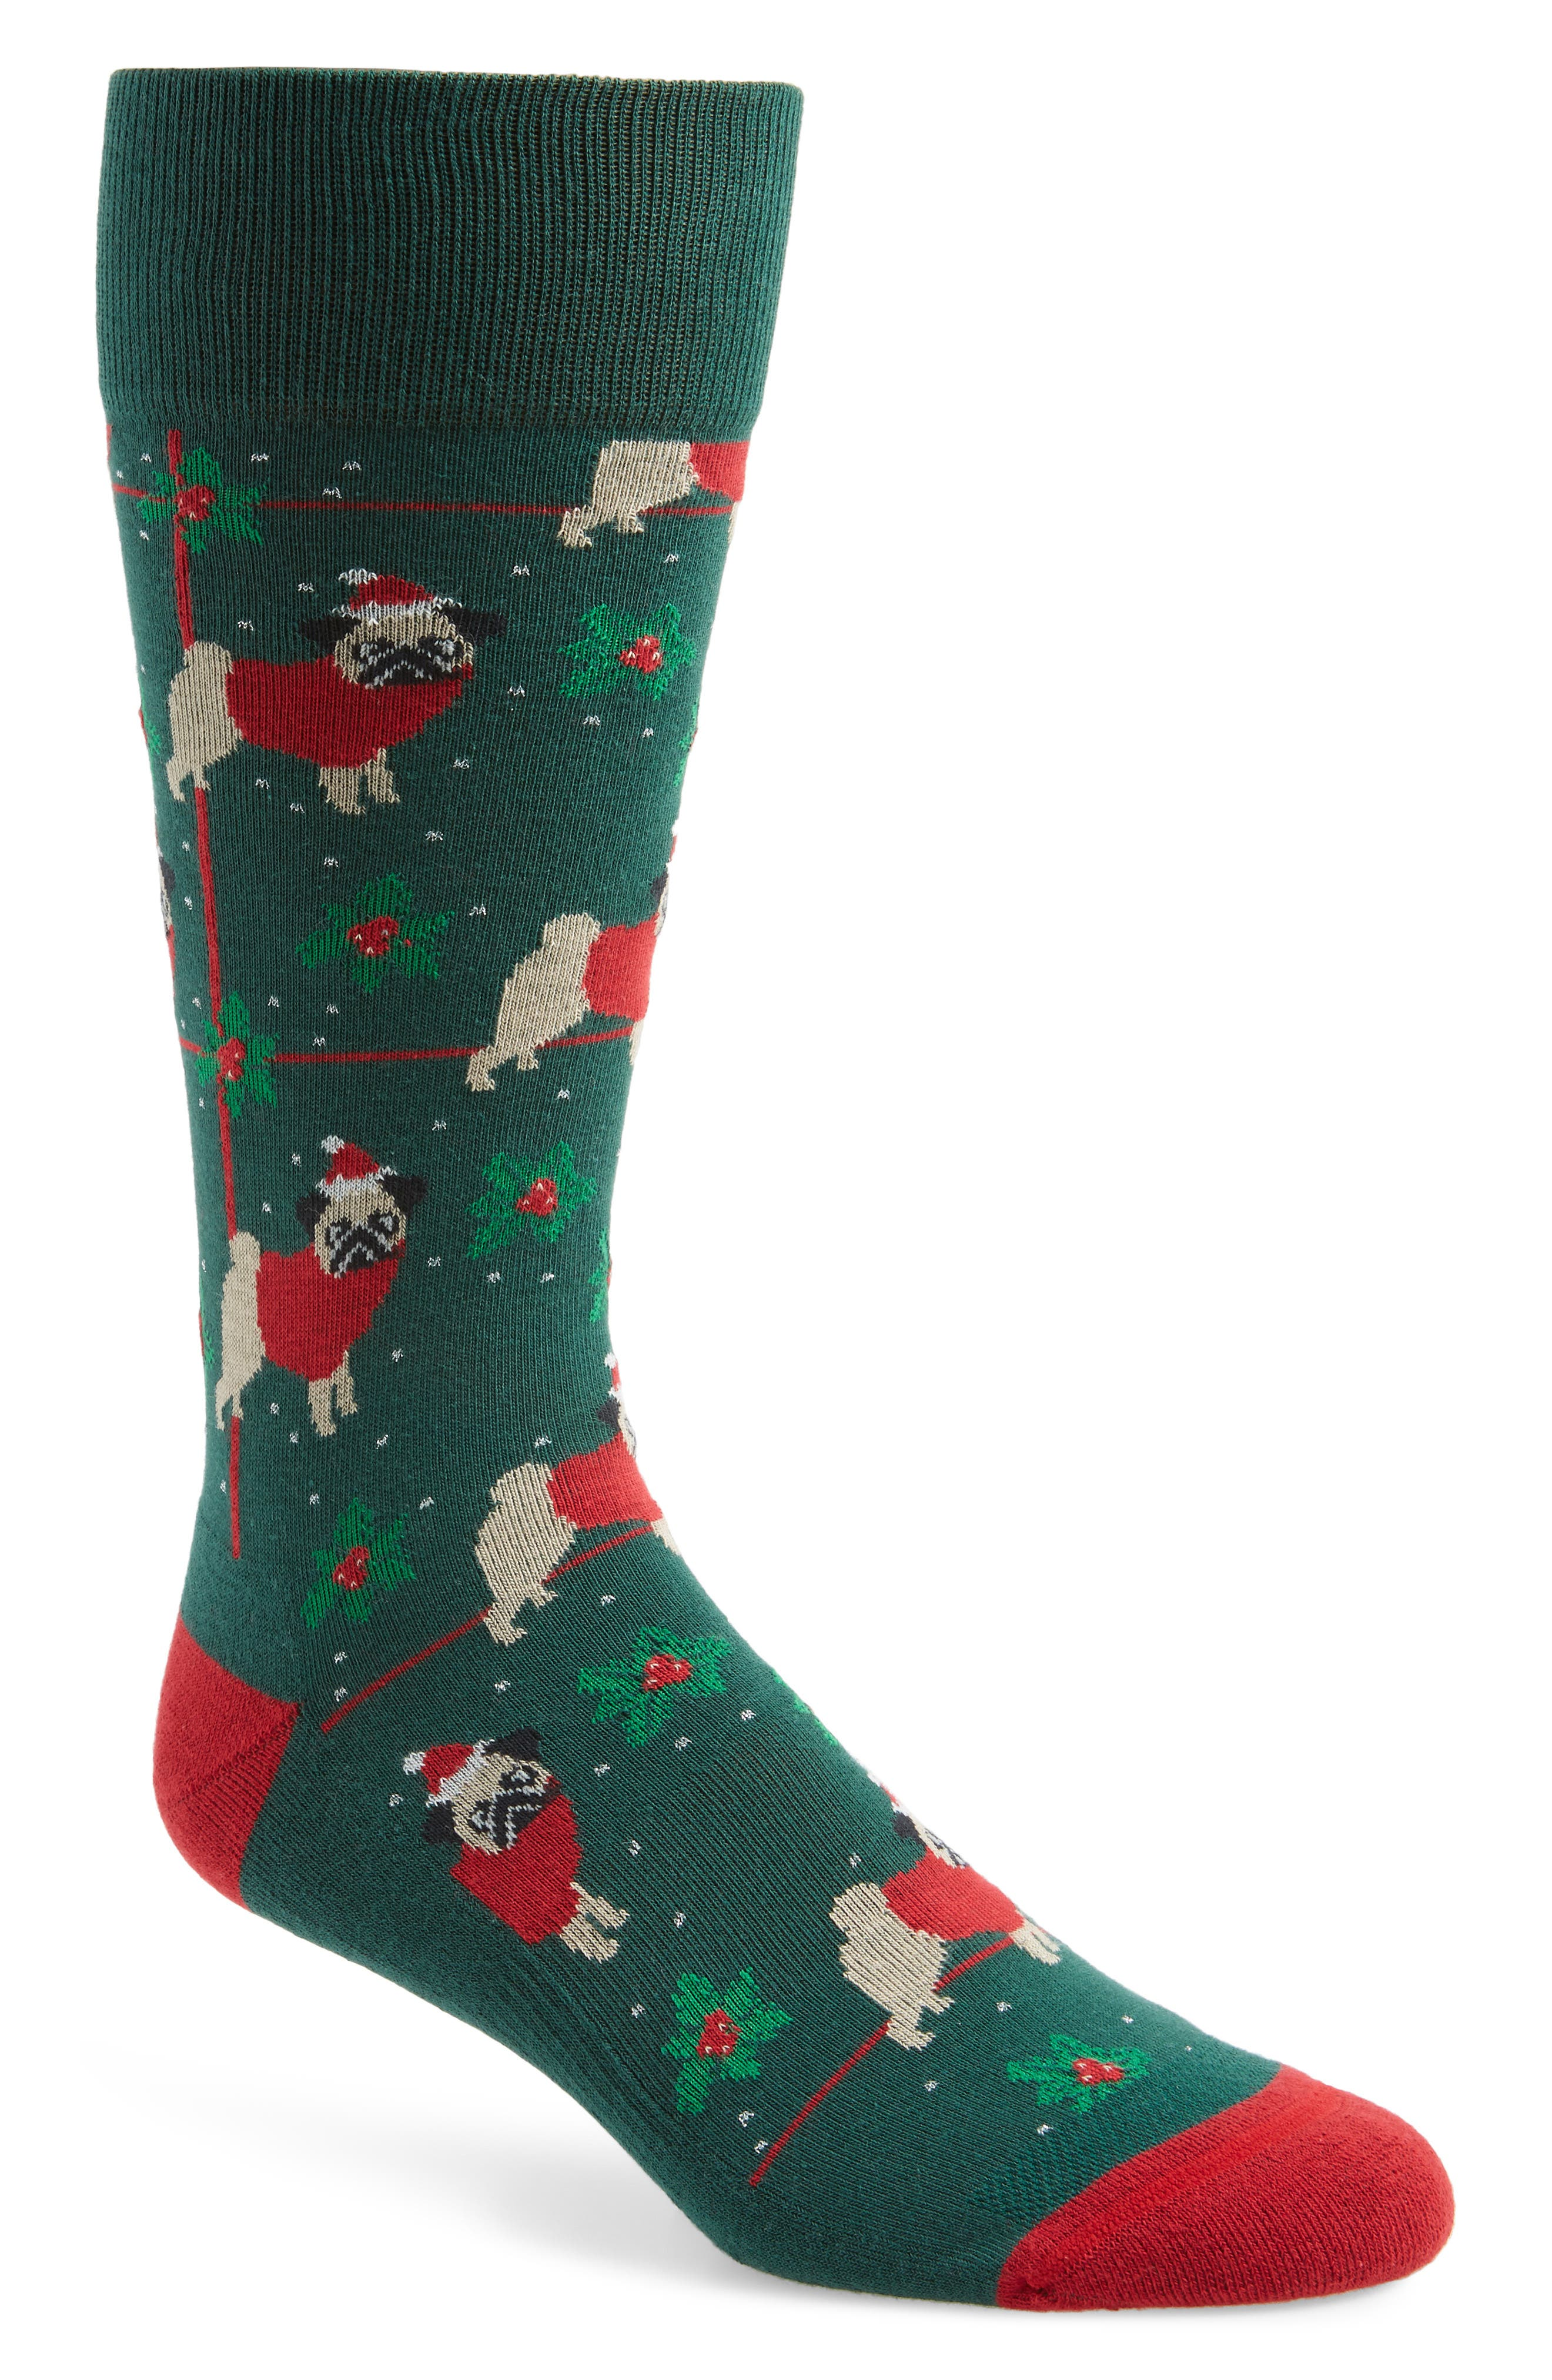 Holiday Santa Pug Socks,                             Main thumbnail 1, color,                             301